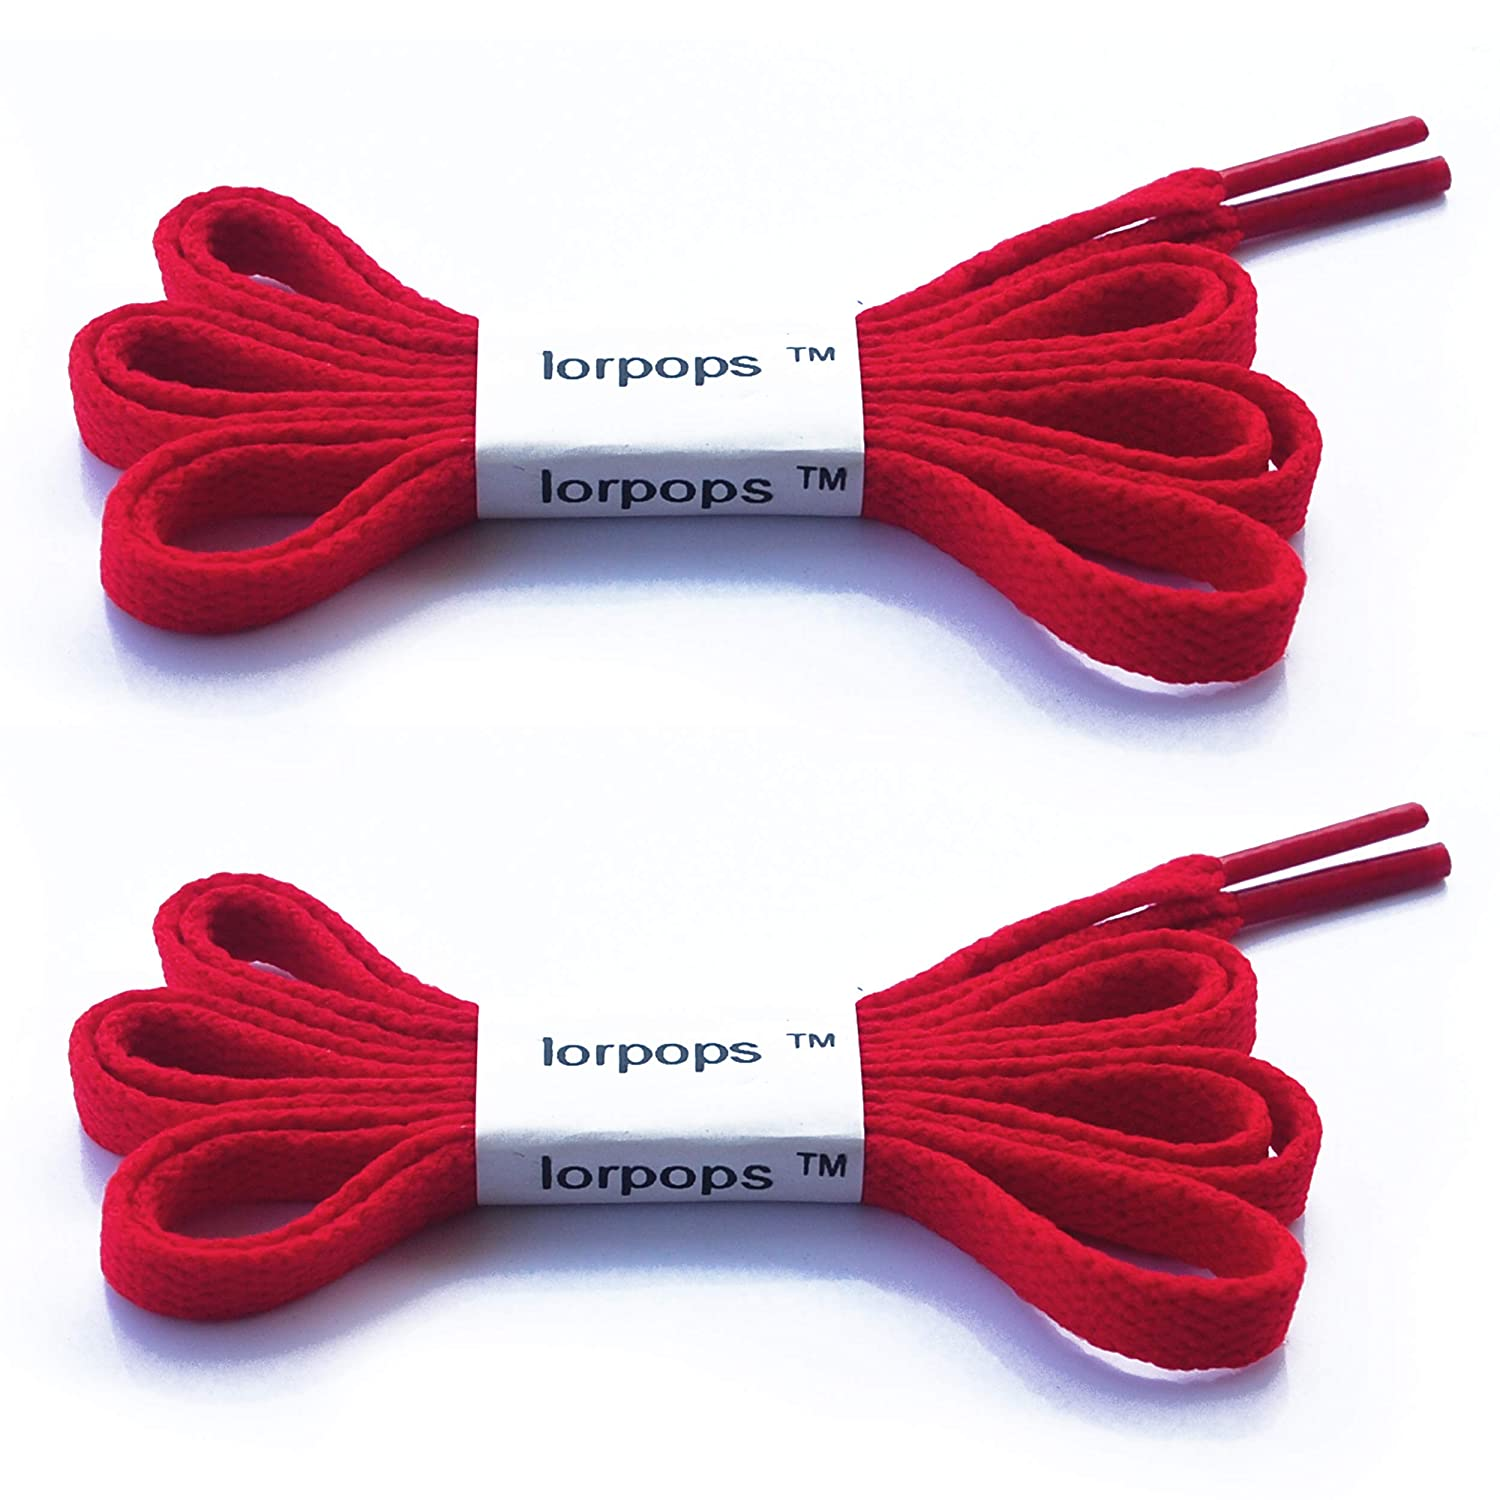 lorpops Flat Shoelaces 5/16 inches Wide(2 Pairs) - for Sneakers and Converse Shoelaces Replacements